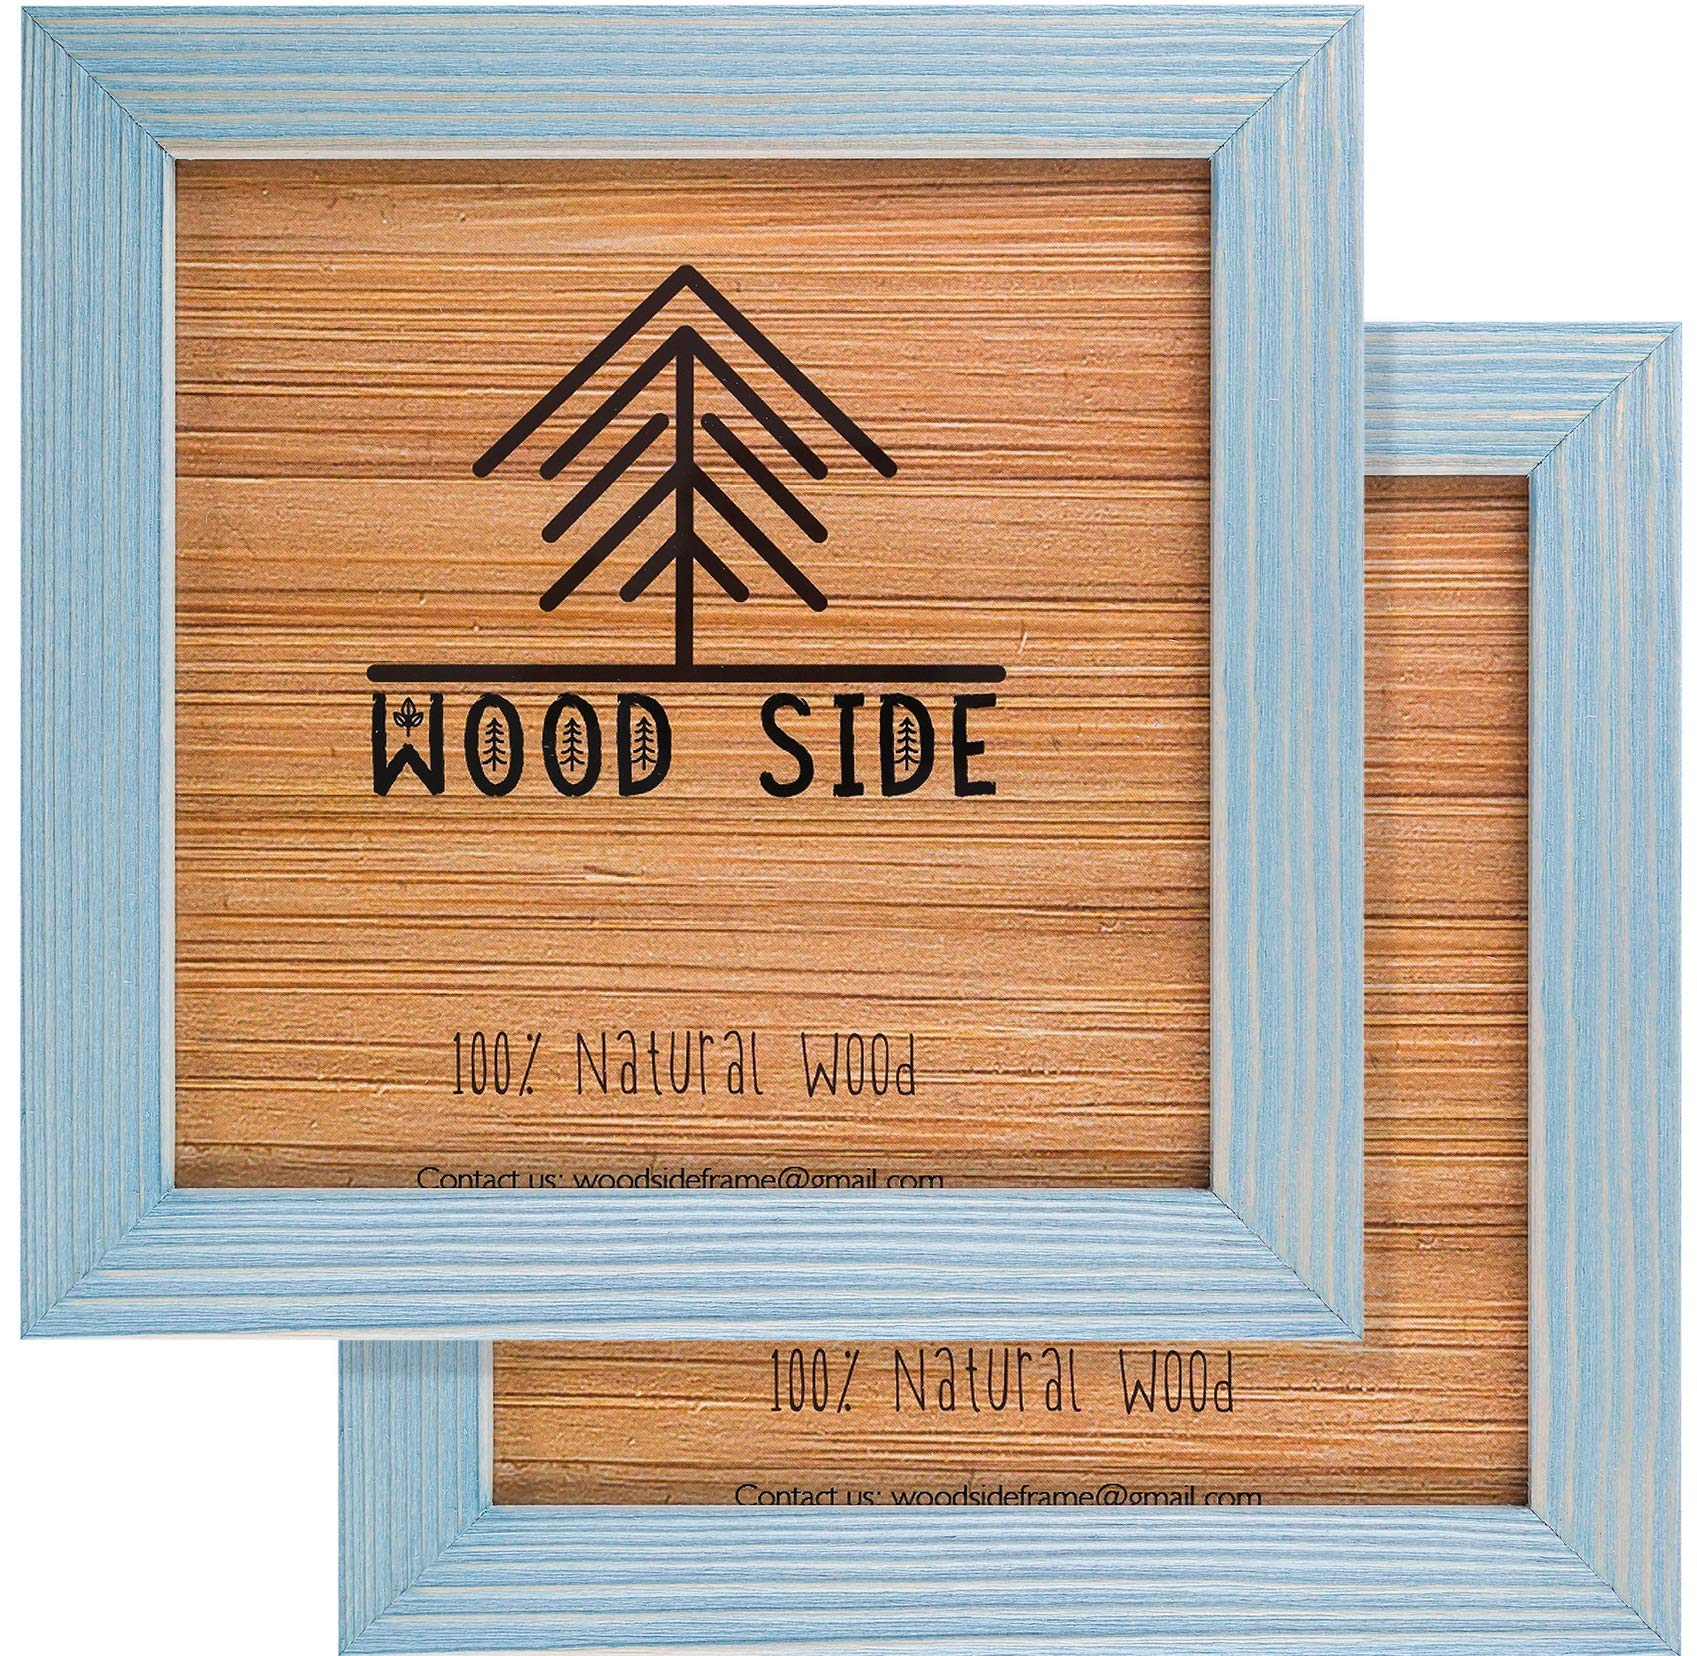 Rustic Wooden Square Picture Frames 8x8 - Set of 2-100% Natural Eco Distressed Wood with Real Glass for Wall Mounting Photo Frame - Blue Turquoise by Wood Side